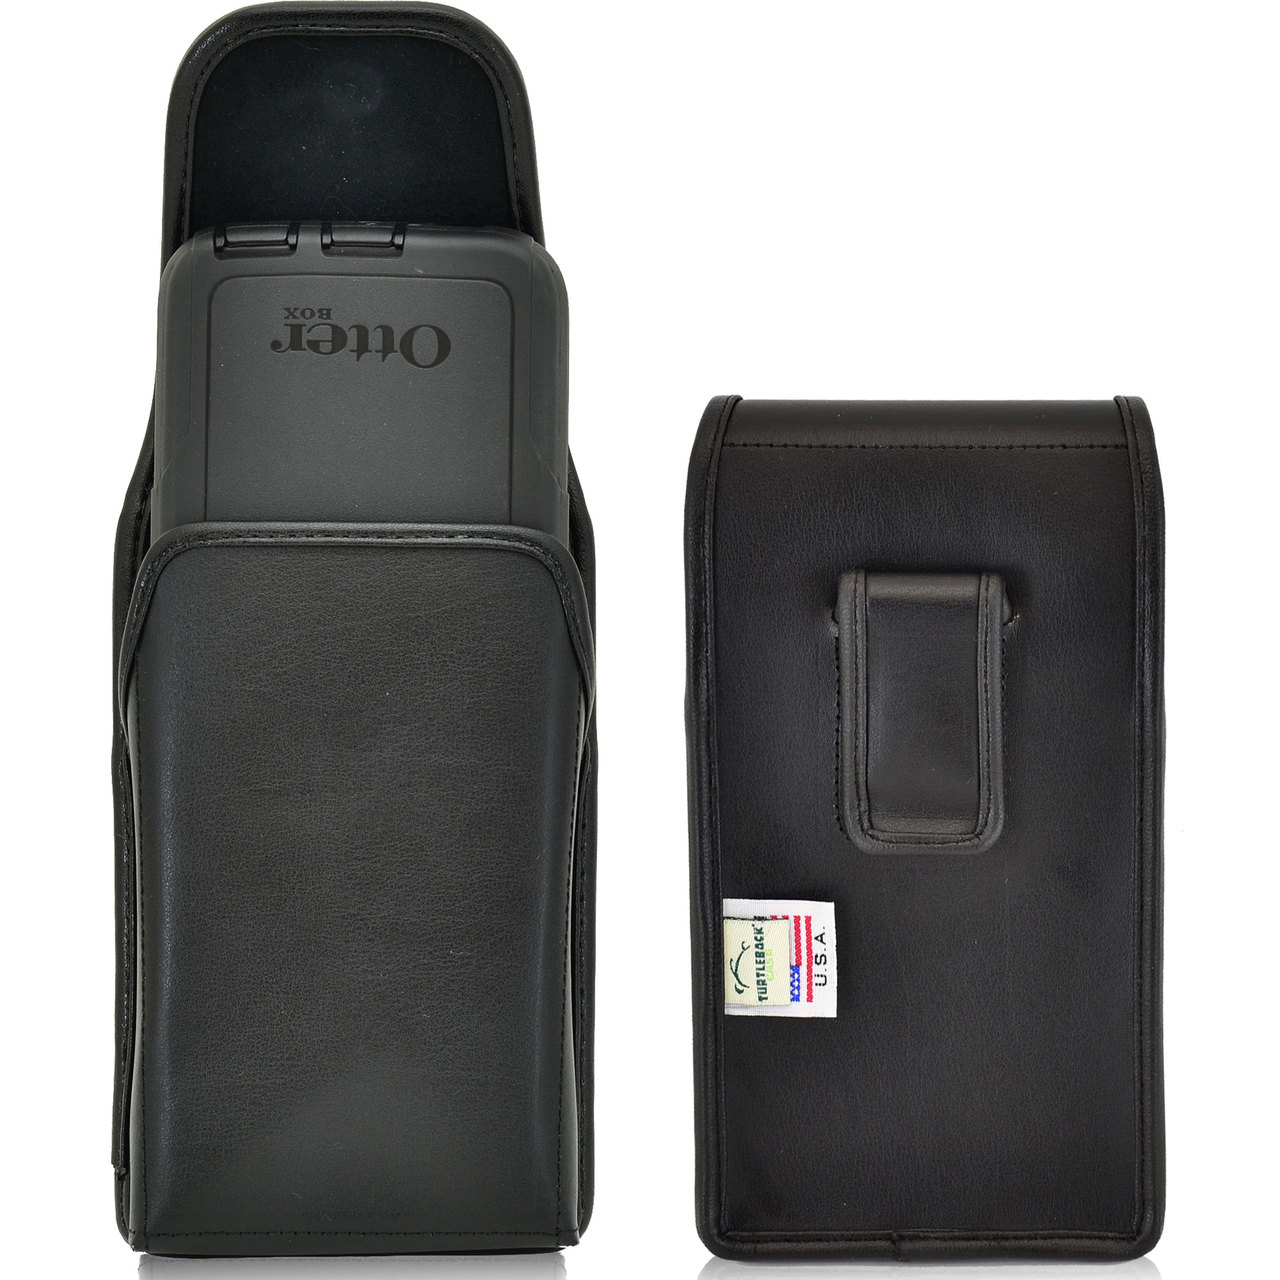 f86982846a3 Vertical Leather Extended Holster for Samsung Galaxy S6 and S6 Edge with  Bulky Cases